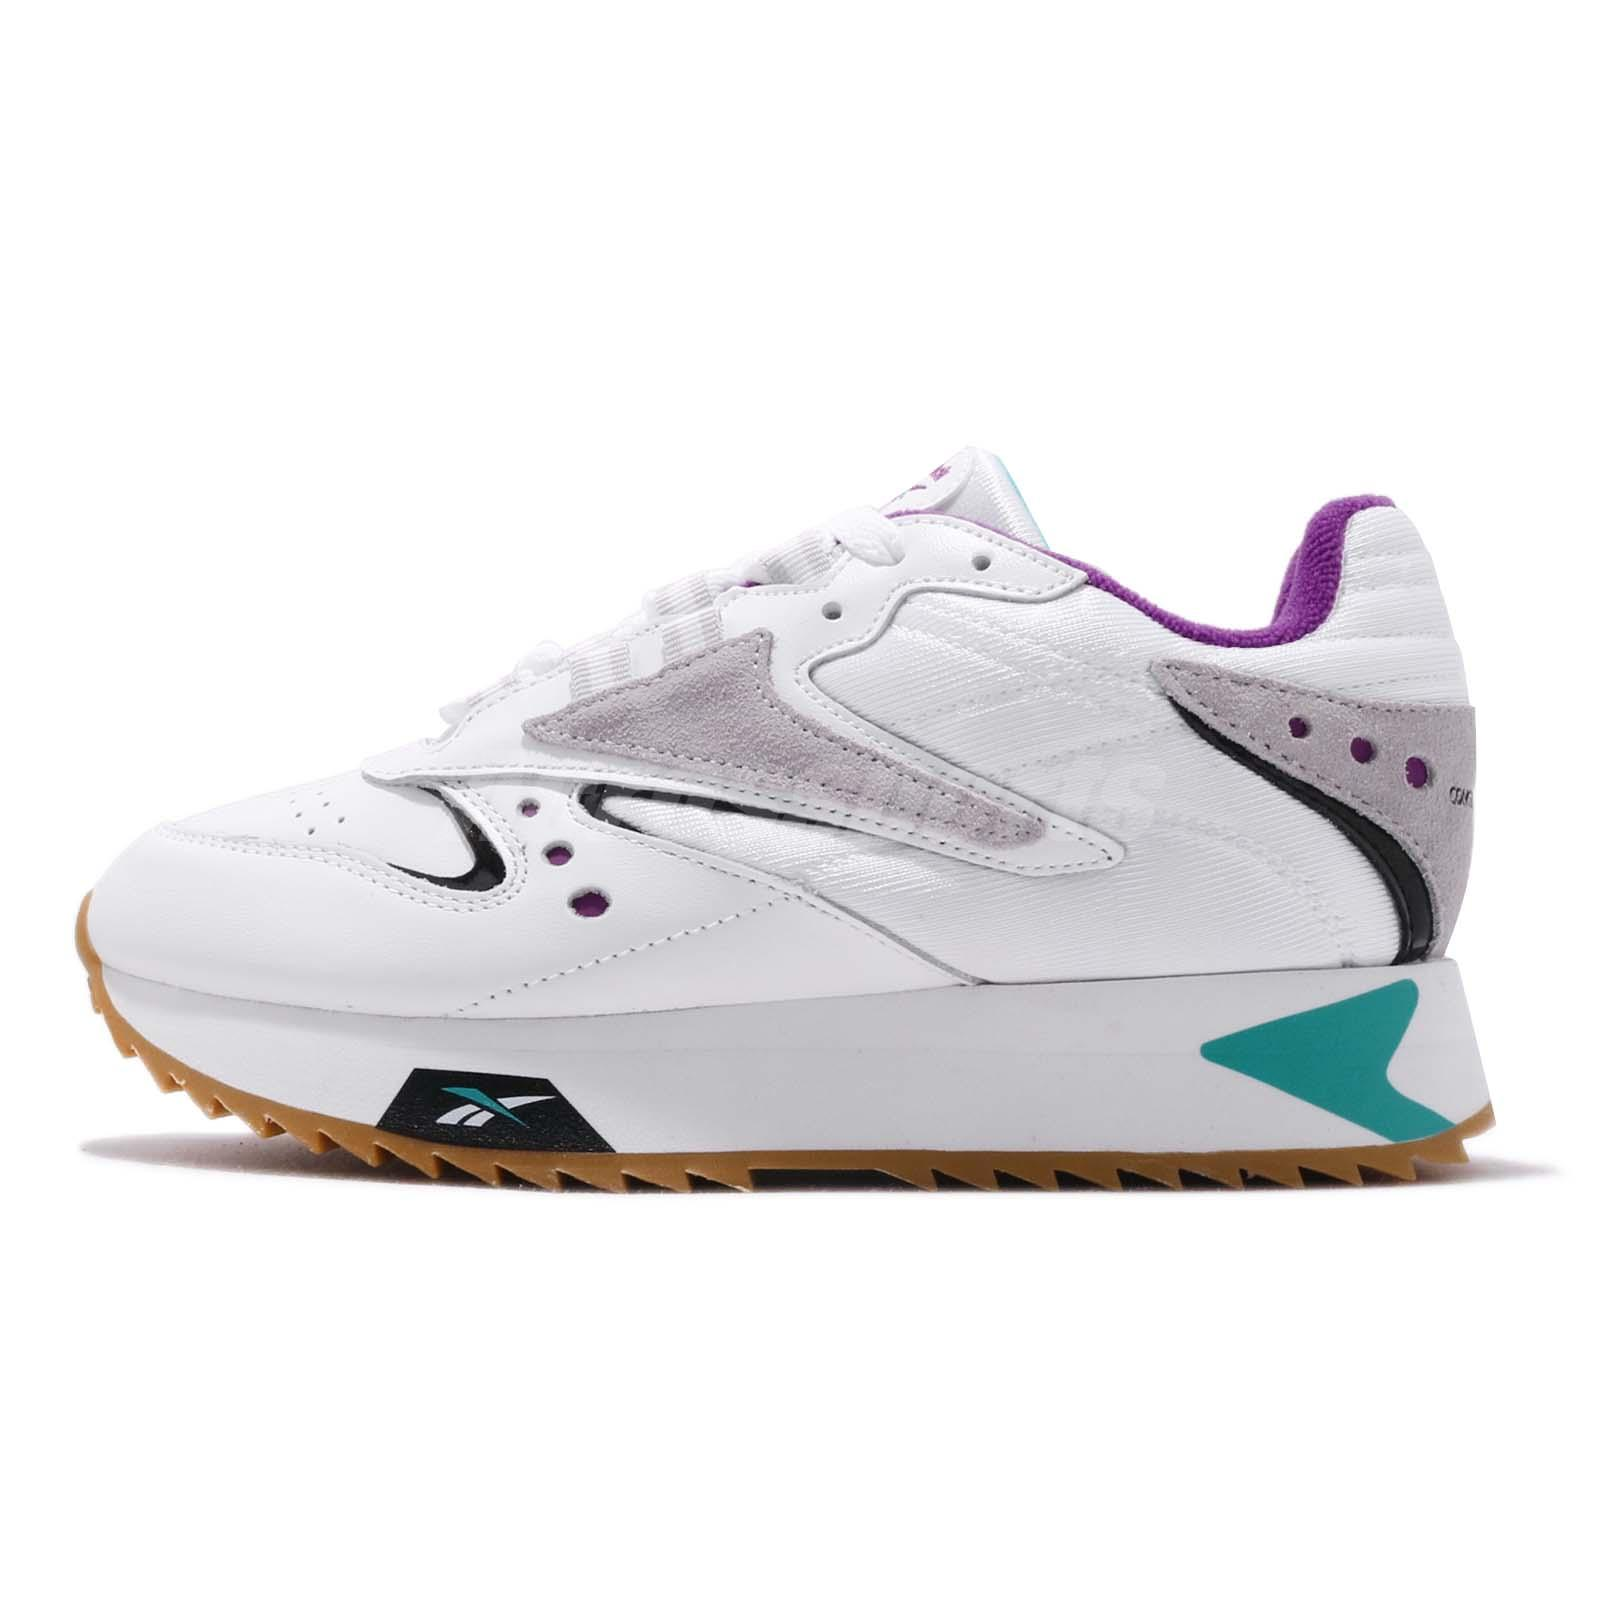 fb9a06fa0013a Reebok CL LTHR ATI 90s W White Teal Purple Womens Classic Shoes Sneakers  DV5376